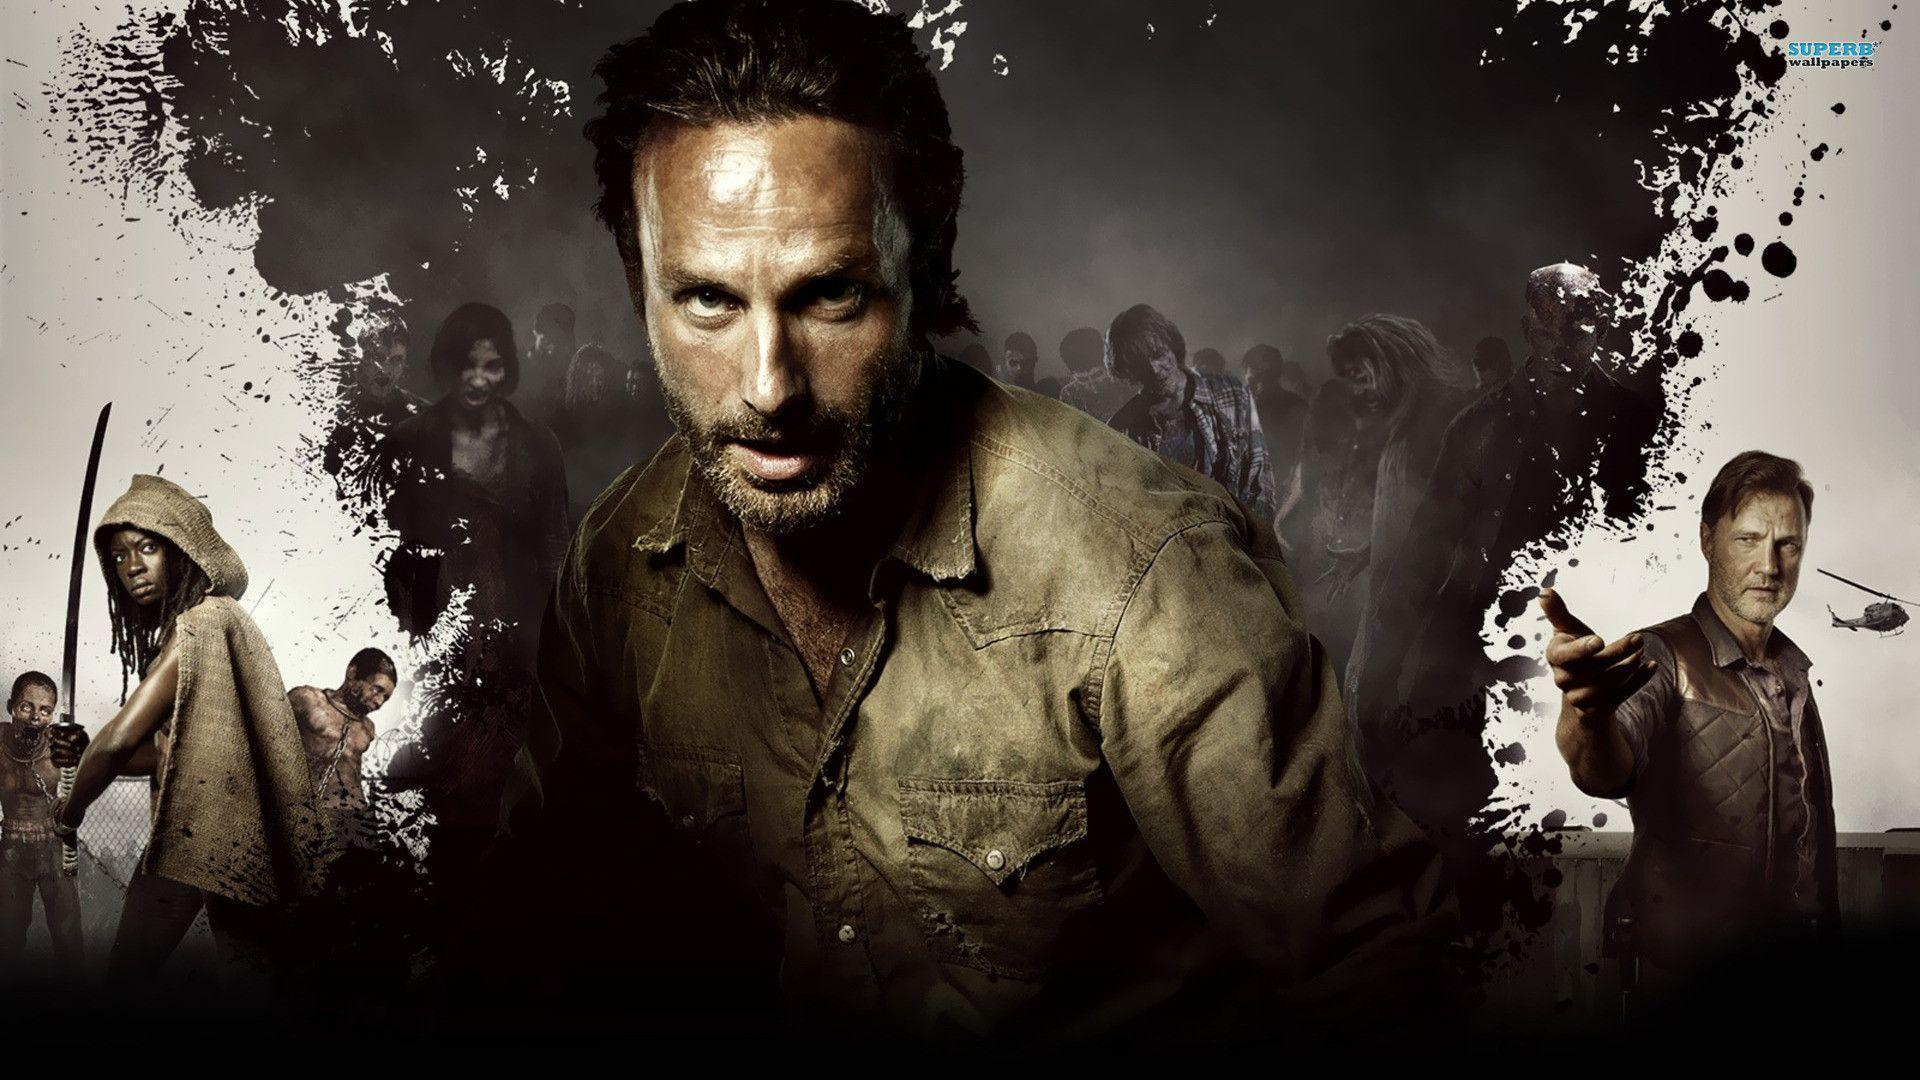 The Walking Dead Picture Hd Wallpapers 1920x1080 62903 Label